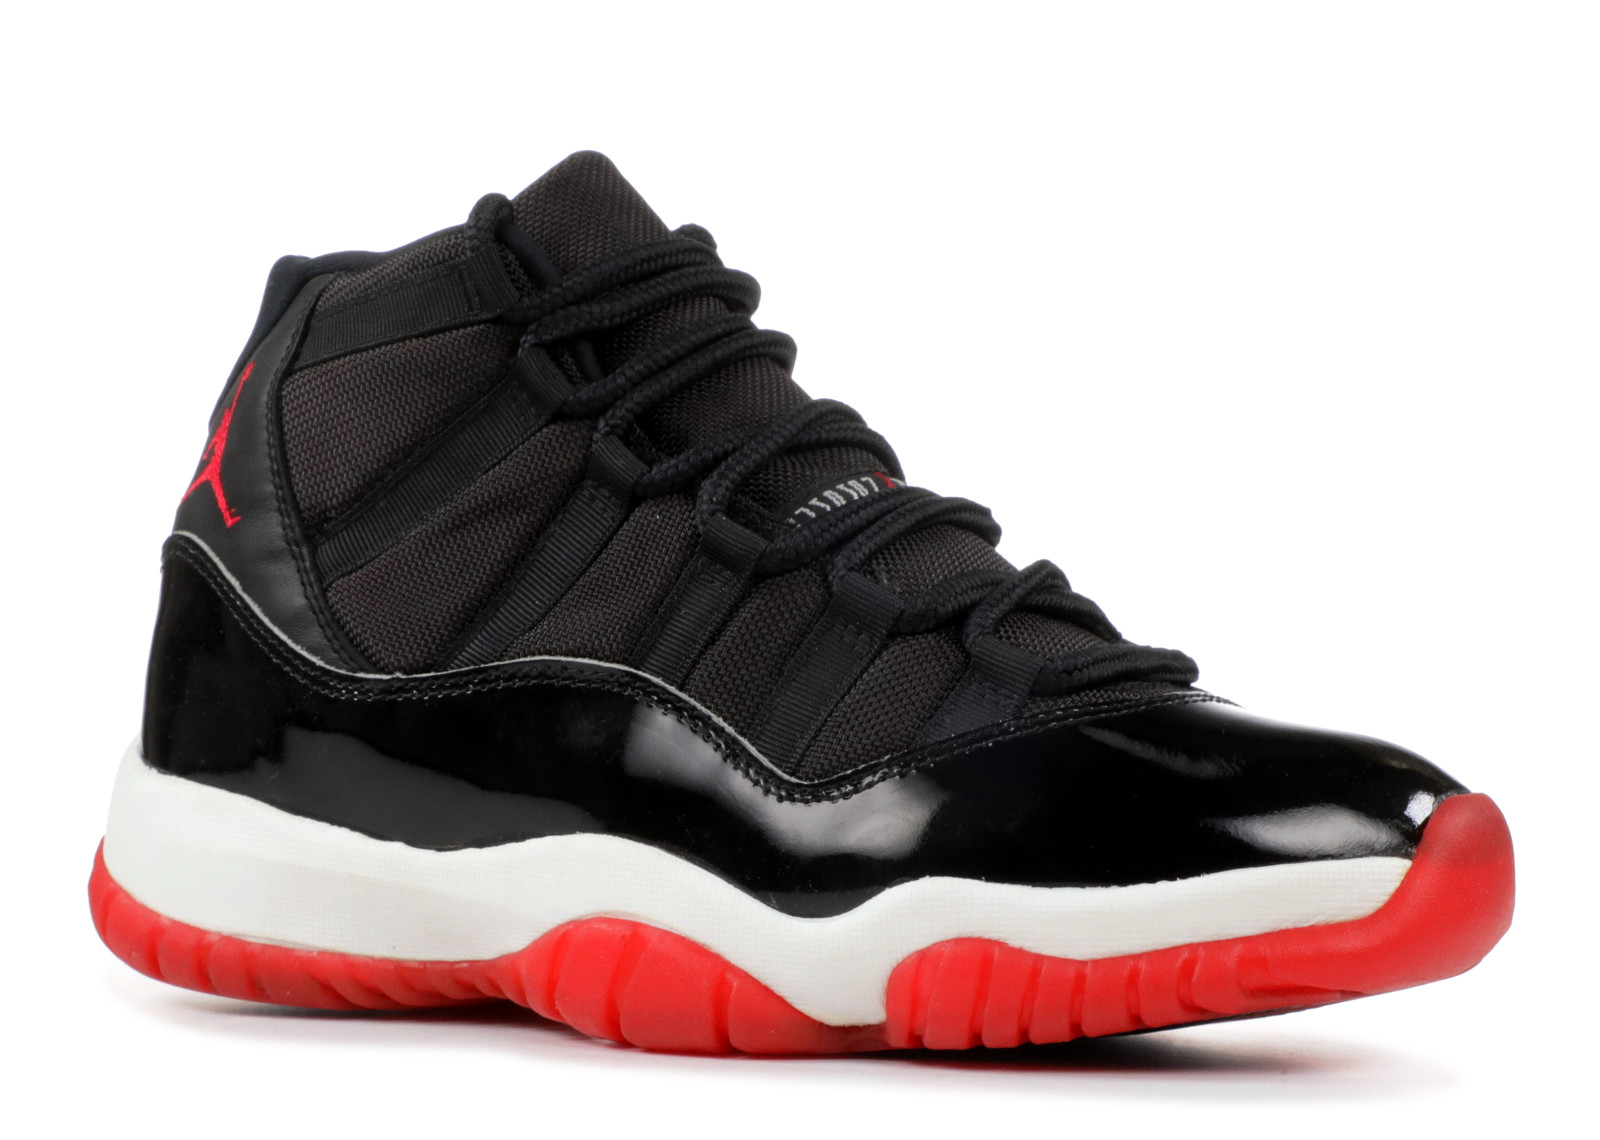 info for 1302a 80fc0 SoleInsider   Sneaker Release Dates And Details